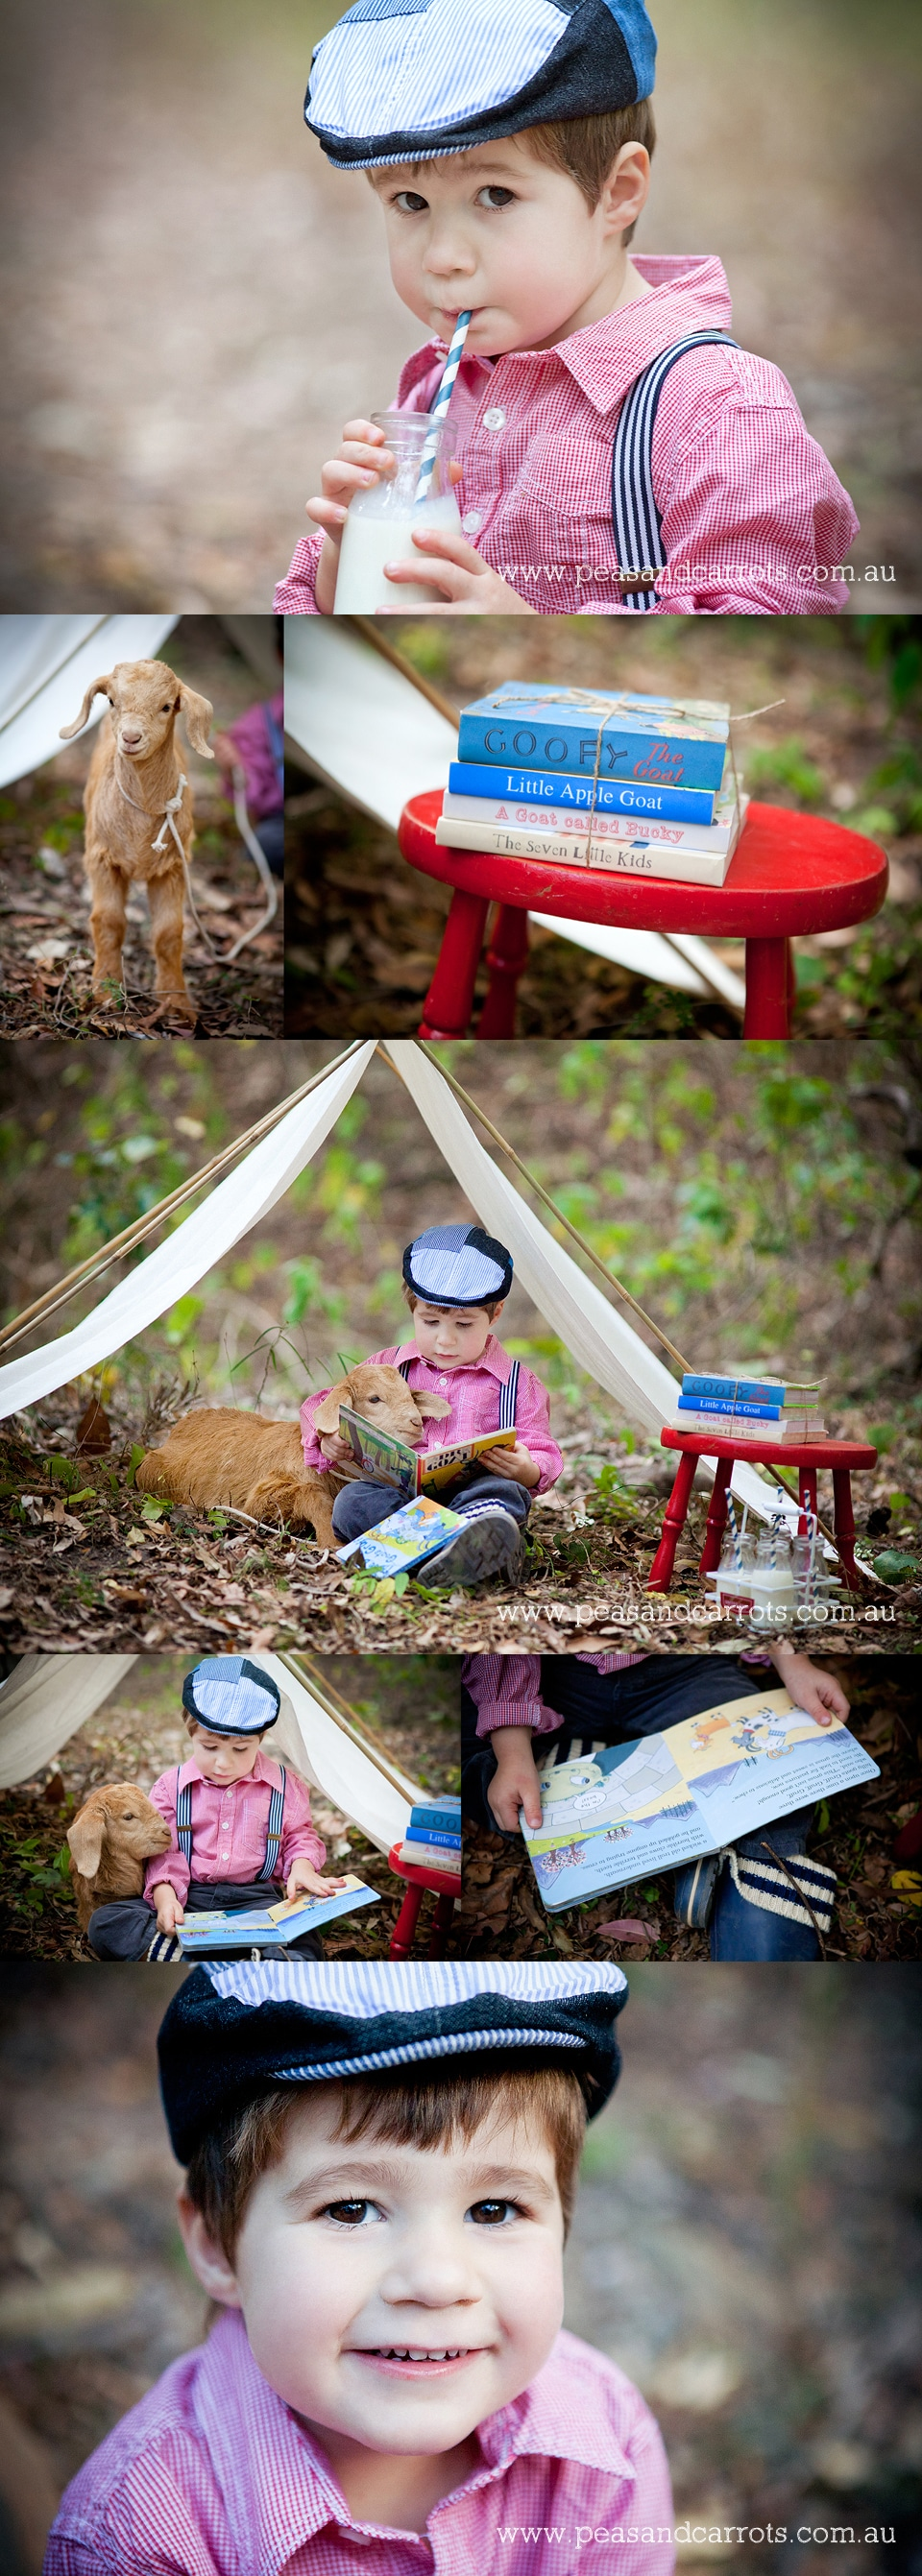 Dayboro, Samford and Brisbane Baby, Children & Family Portrait Photography ~ Peas & Carrots Photography ~ Ari & Snoop the Goat have a milkshake picnic and reading goat books together.